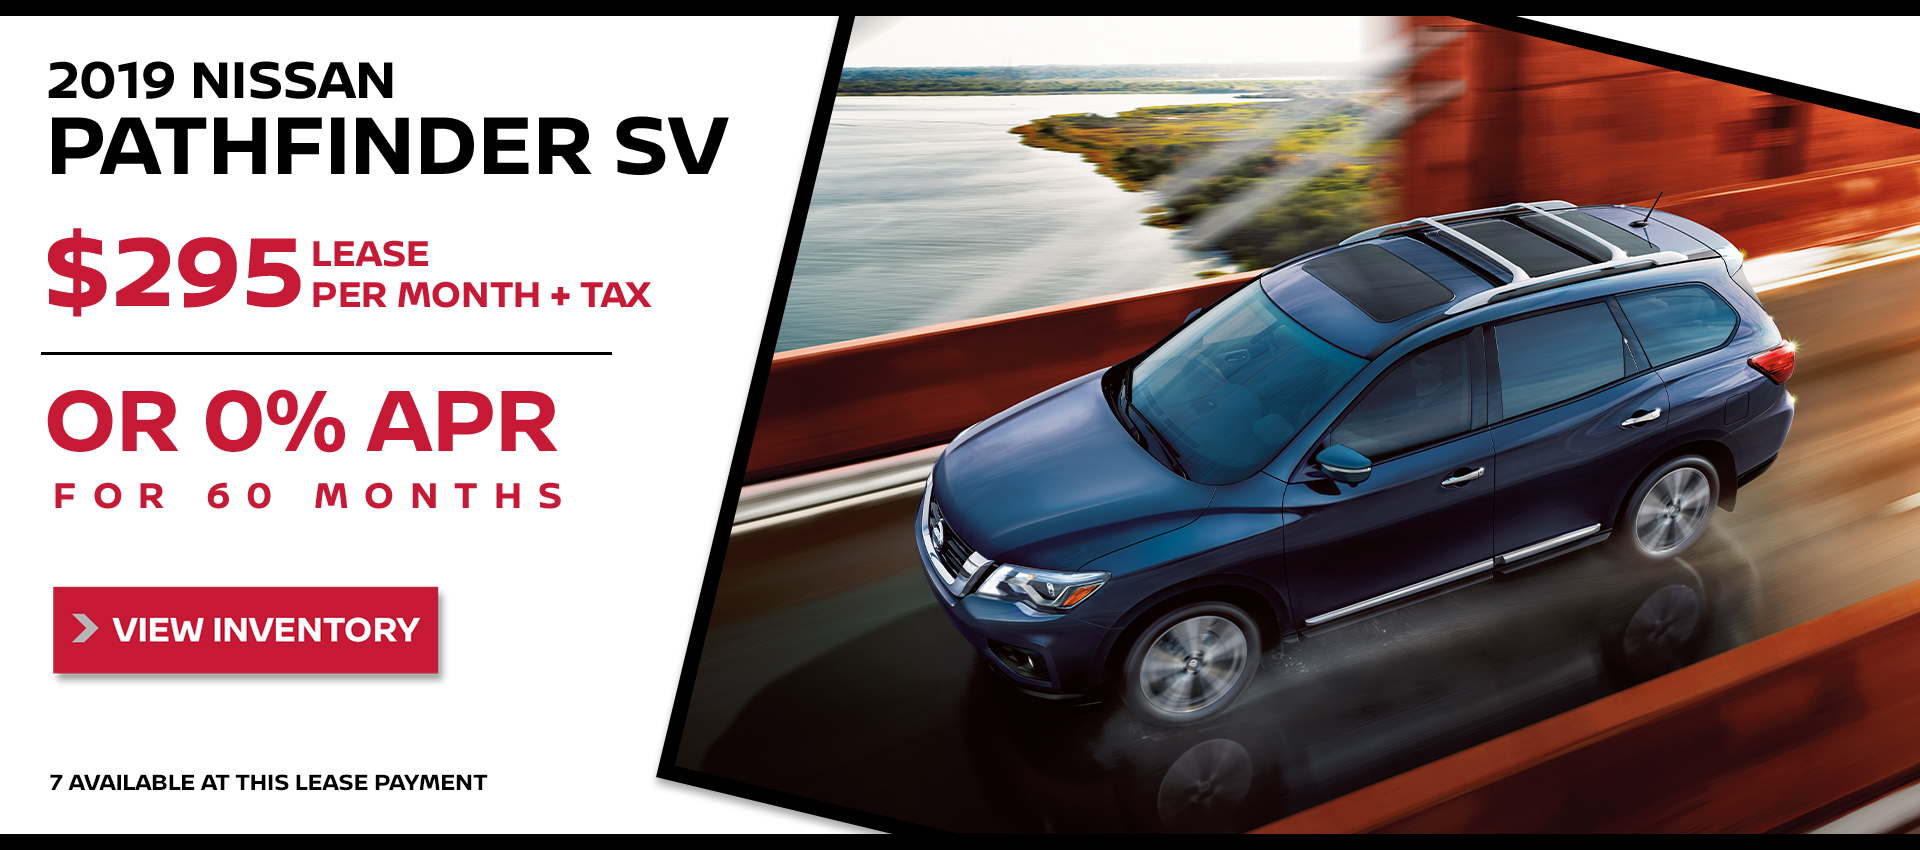 Mossy Nissan - Nissan Pathfinder $295 Lease HP